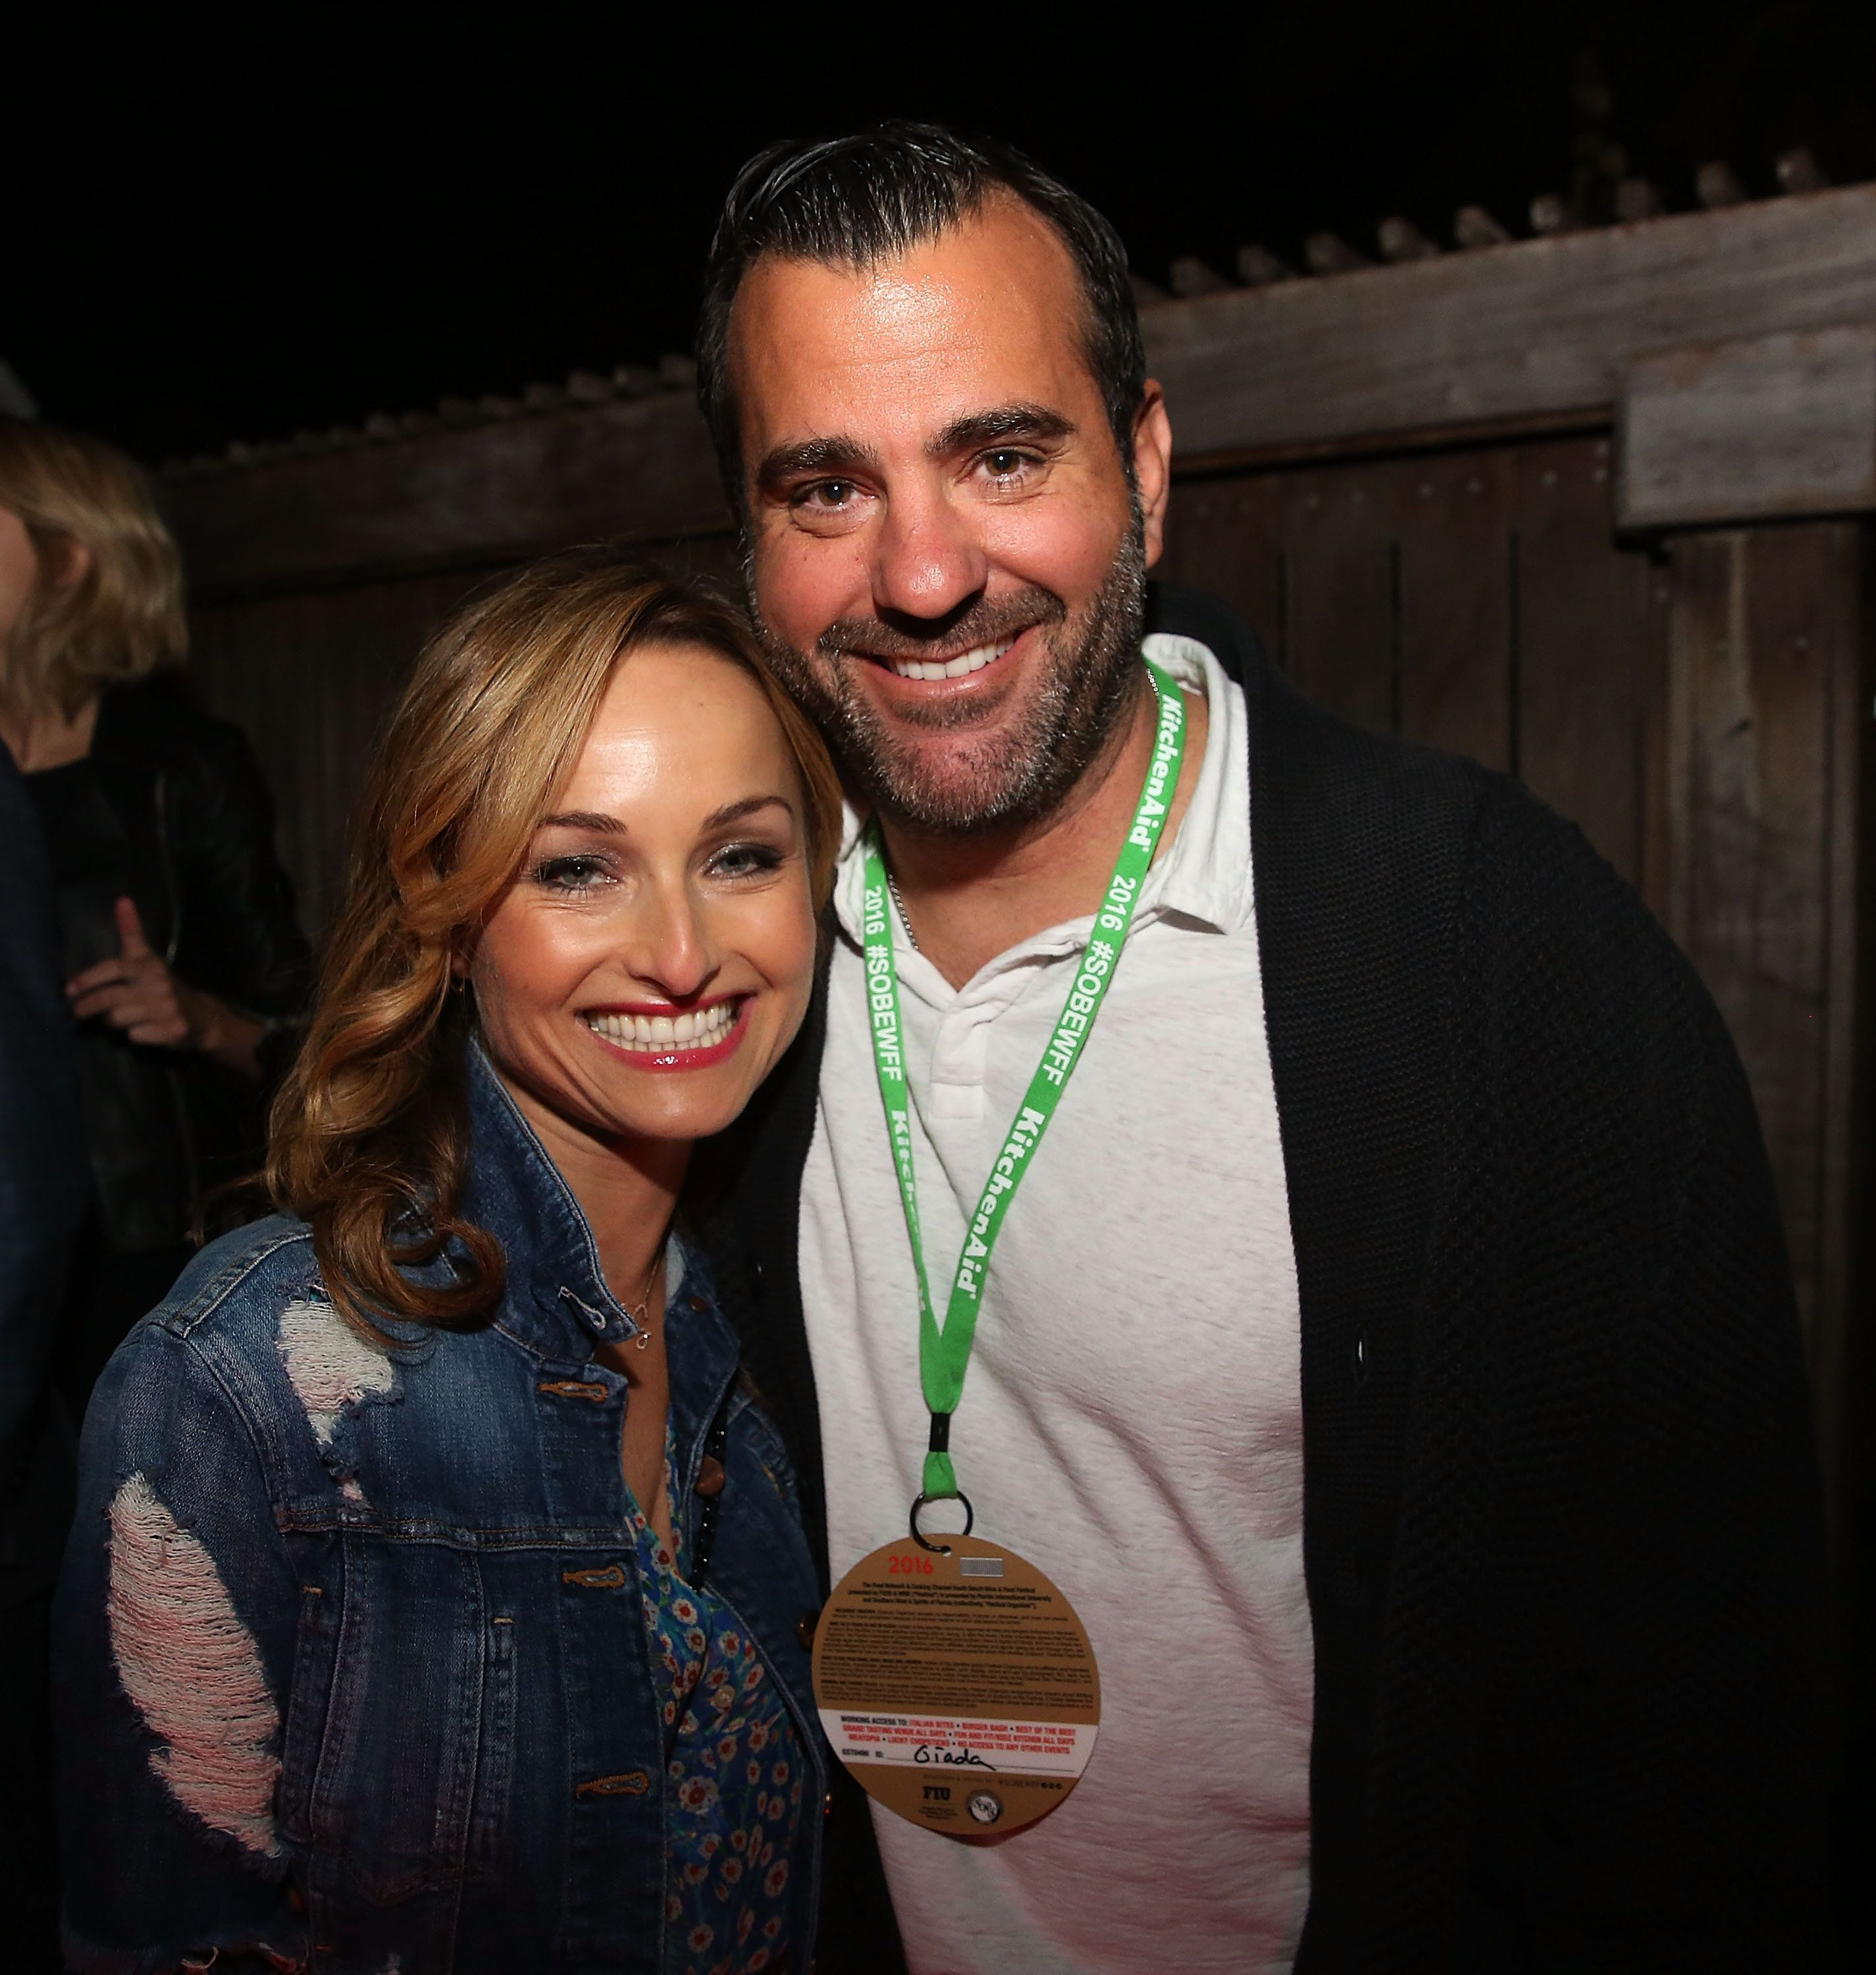 MIAMI BEACH, FL - FEBRUARY 26:  Giada De Laurentiis and Shane Farley attend Fireman Derek's Midnight Breakfast hosted by Chrissy Teigen during 2016 Food Network & Cooking Channel South Beach Wine & Food Festival Presented By FOOD & WINE at National Hotel on February 26, 2016 in Miami Beach, Florida.  (Photo by Aaron Davidson/Getty Images For SOBEWFF)